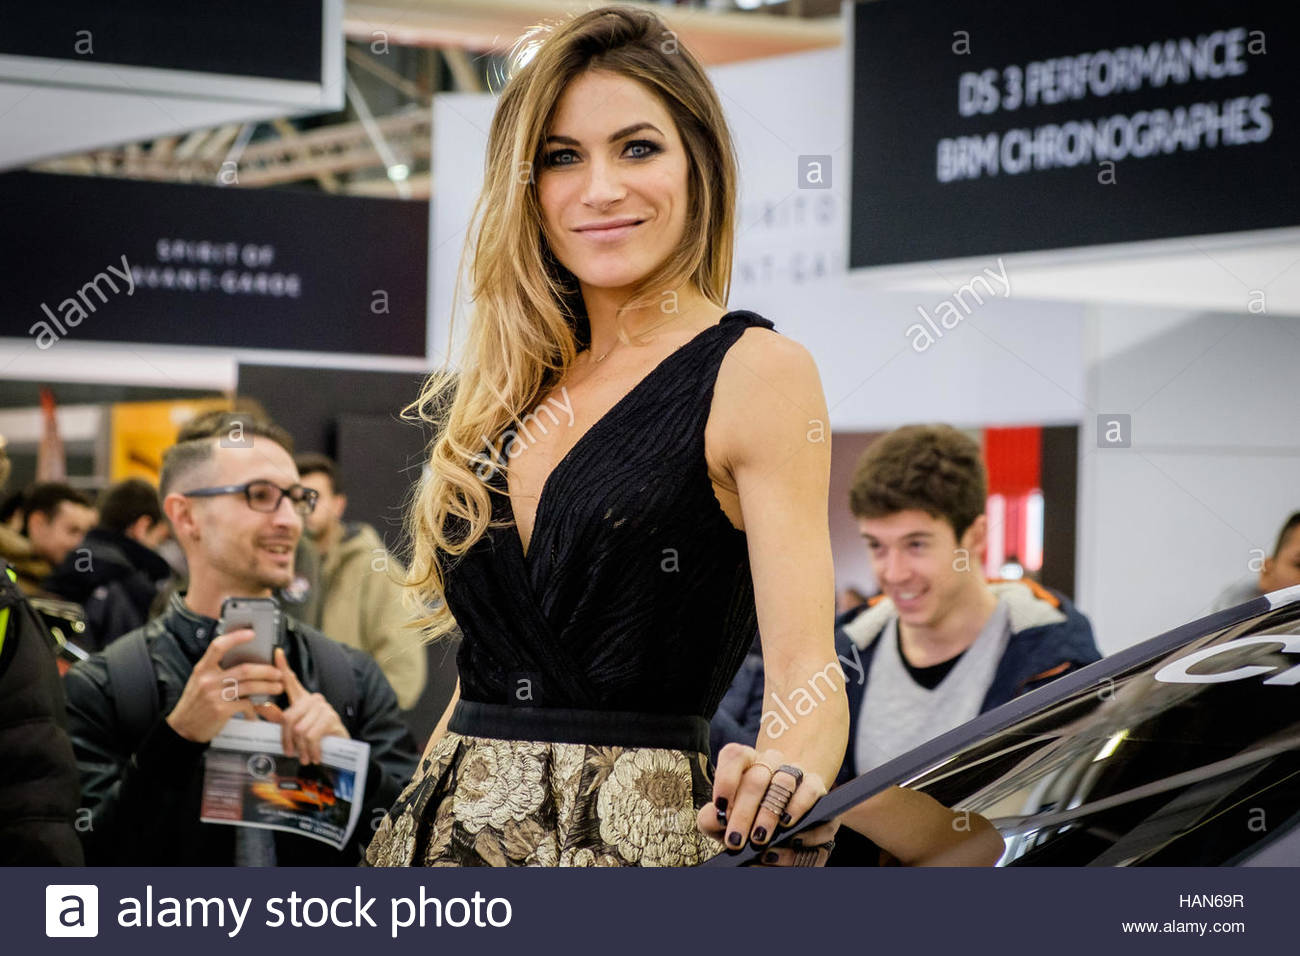 Italian Actress Eleonora Pedron attends the Motor Show 2016 on December 3, 2016 in Bologna, Italy. The Bologna motor - Stock Image